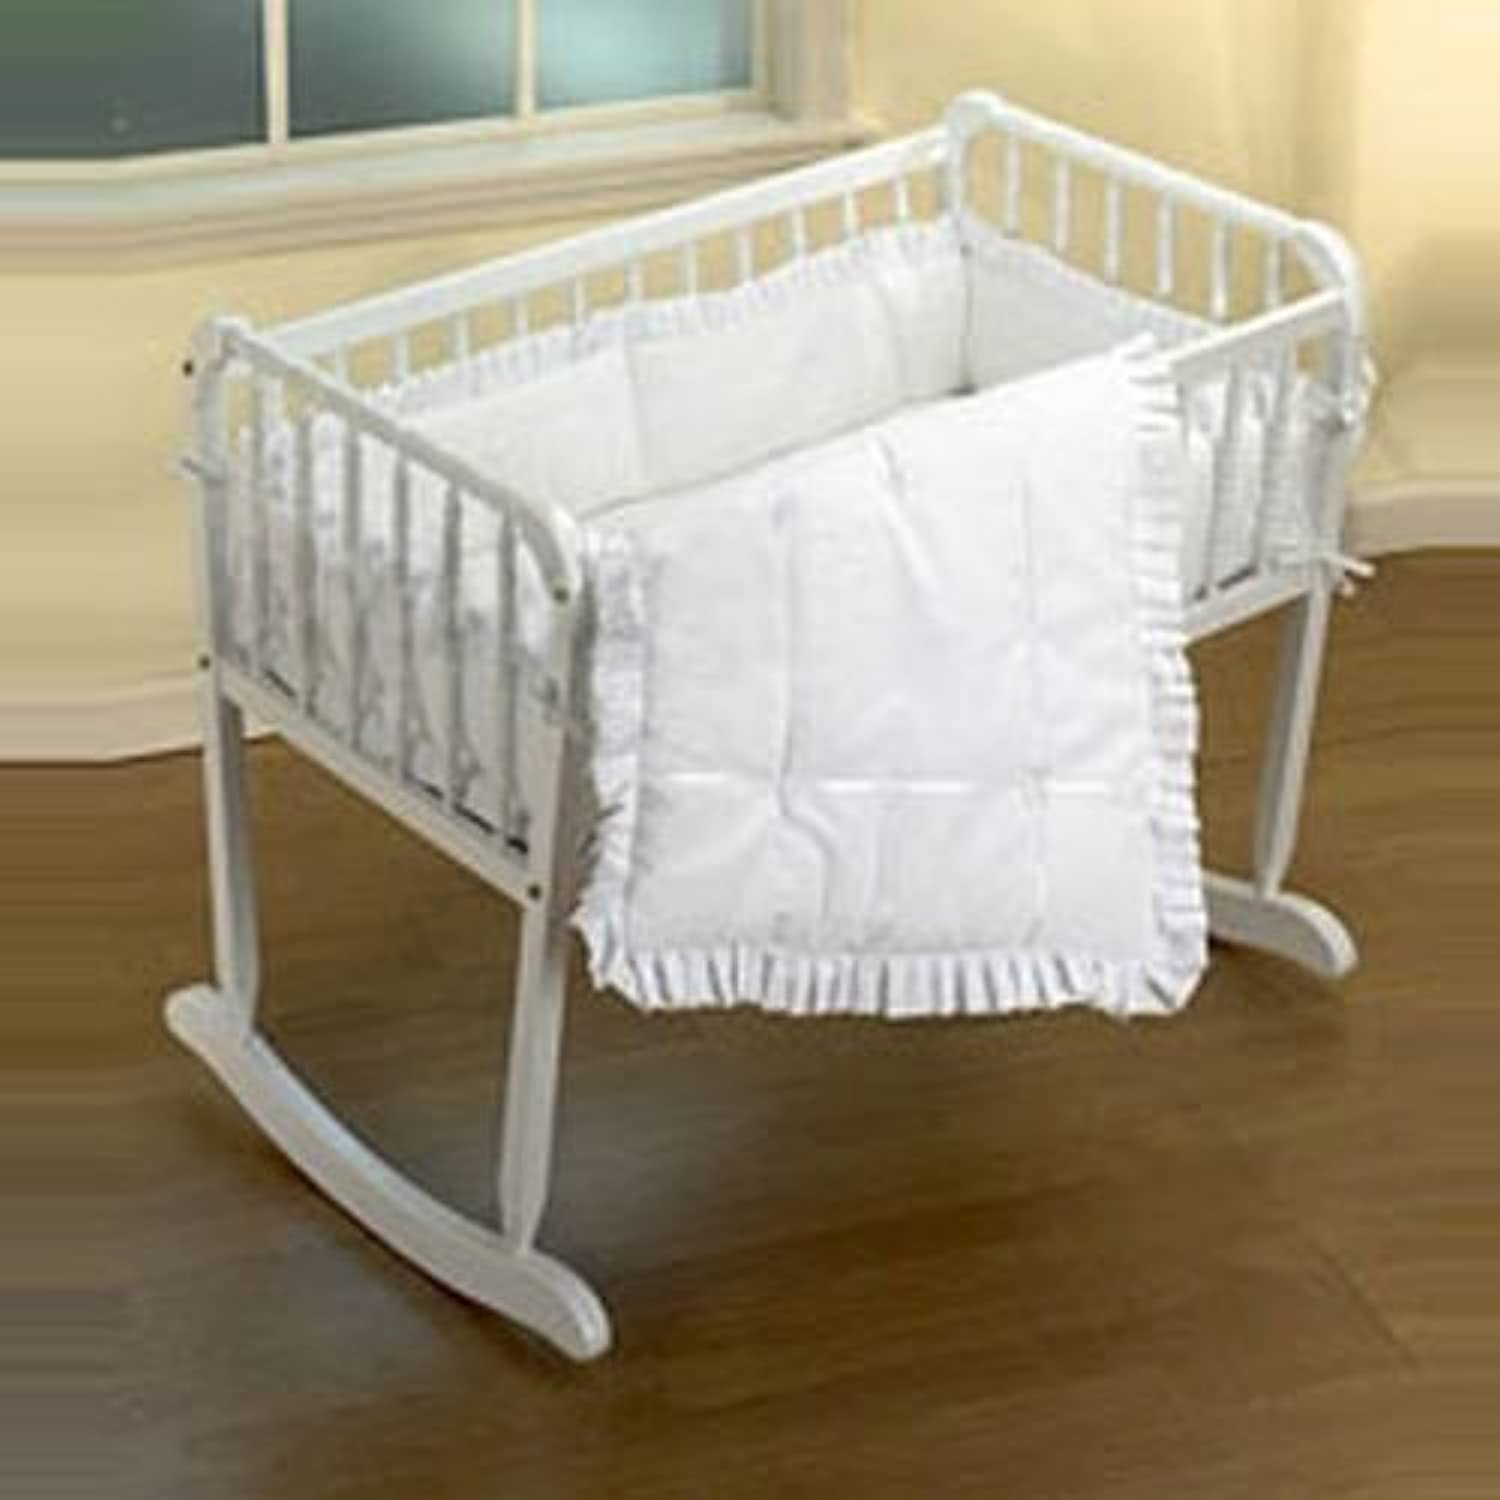 Baby Doll Bedding Simplicity Cradle Set, White by BabyDoll Bedding